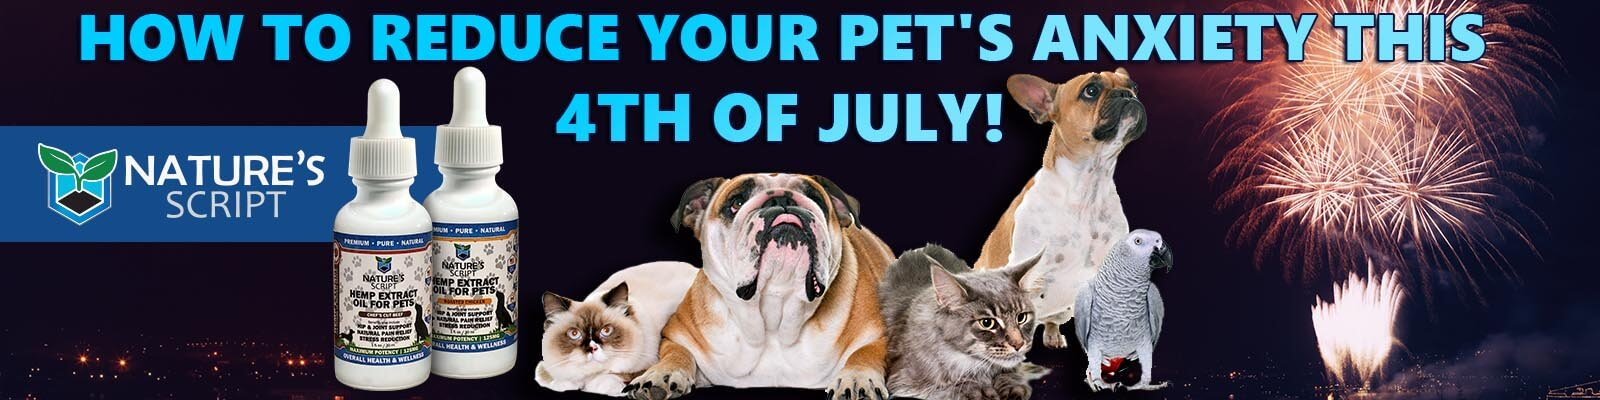 how to reduce your pets anxiety fourth of july